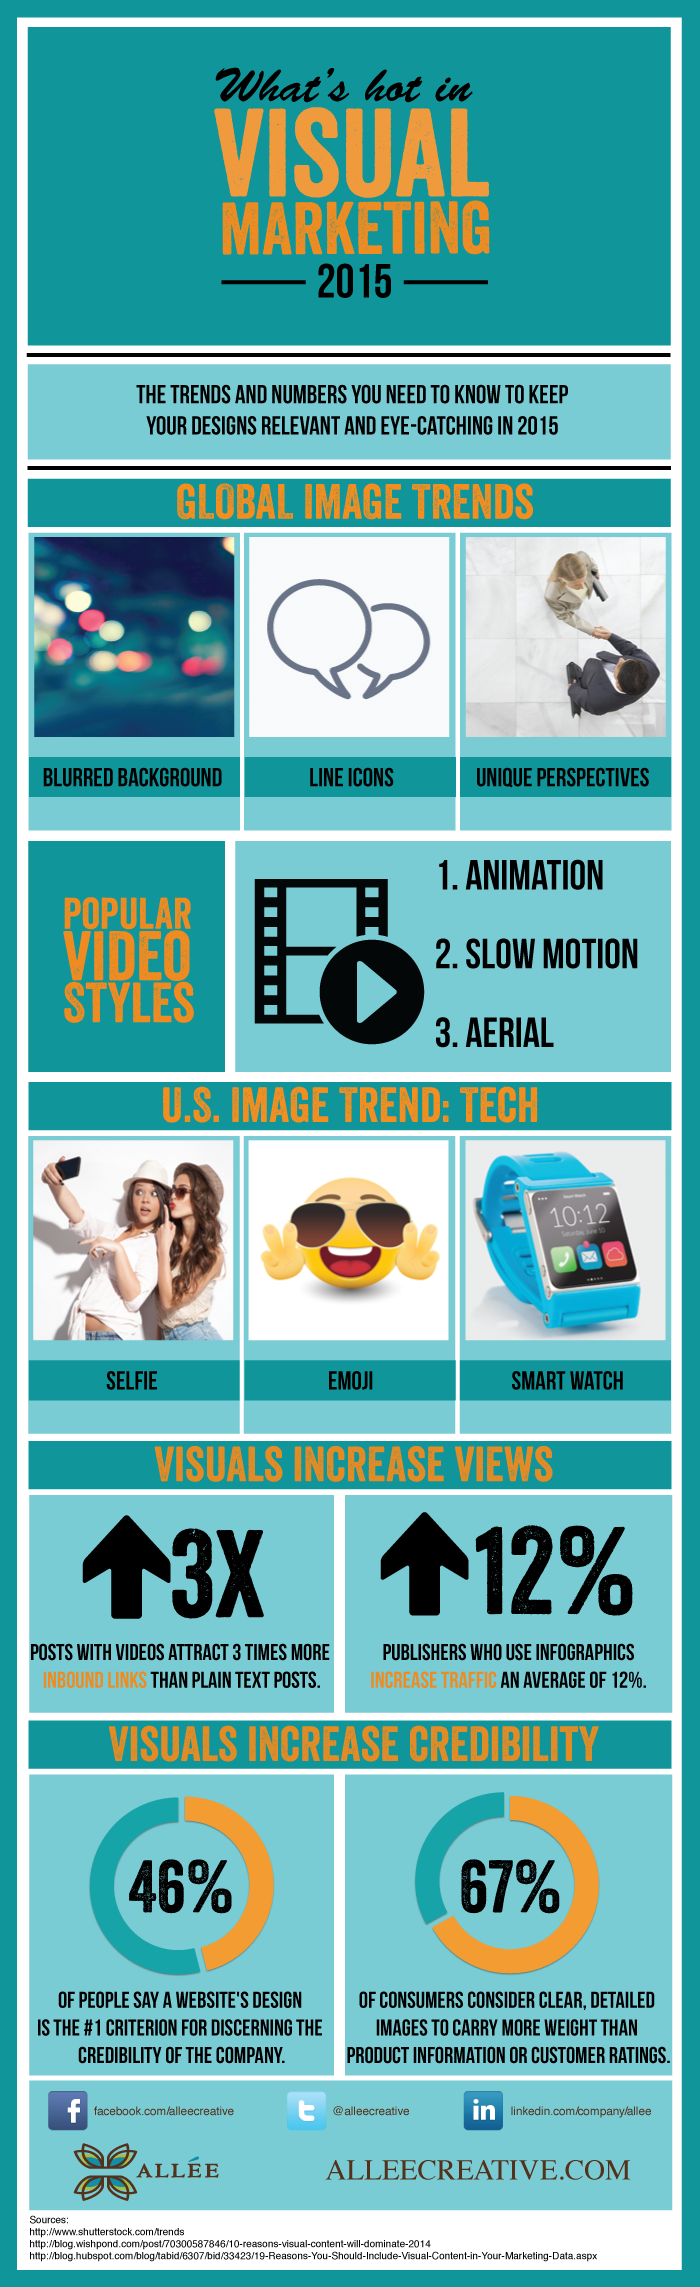 2015 Visual Marketing Trends Infographic